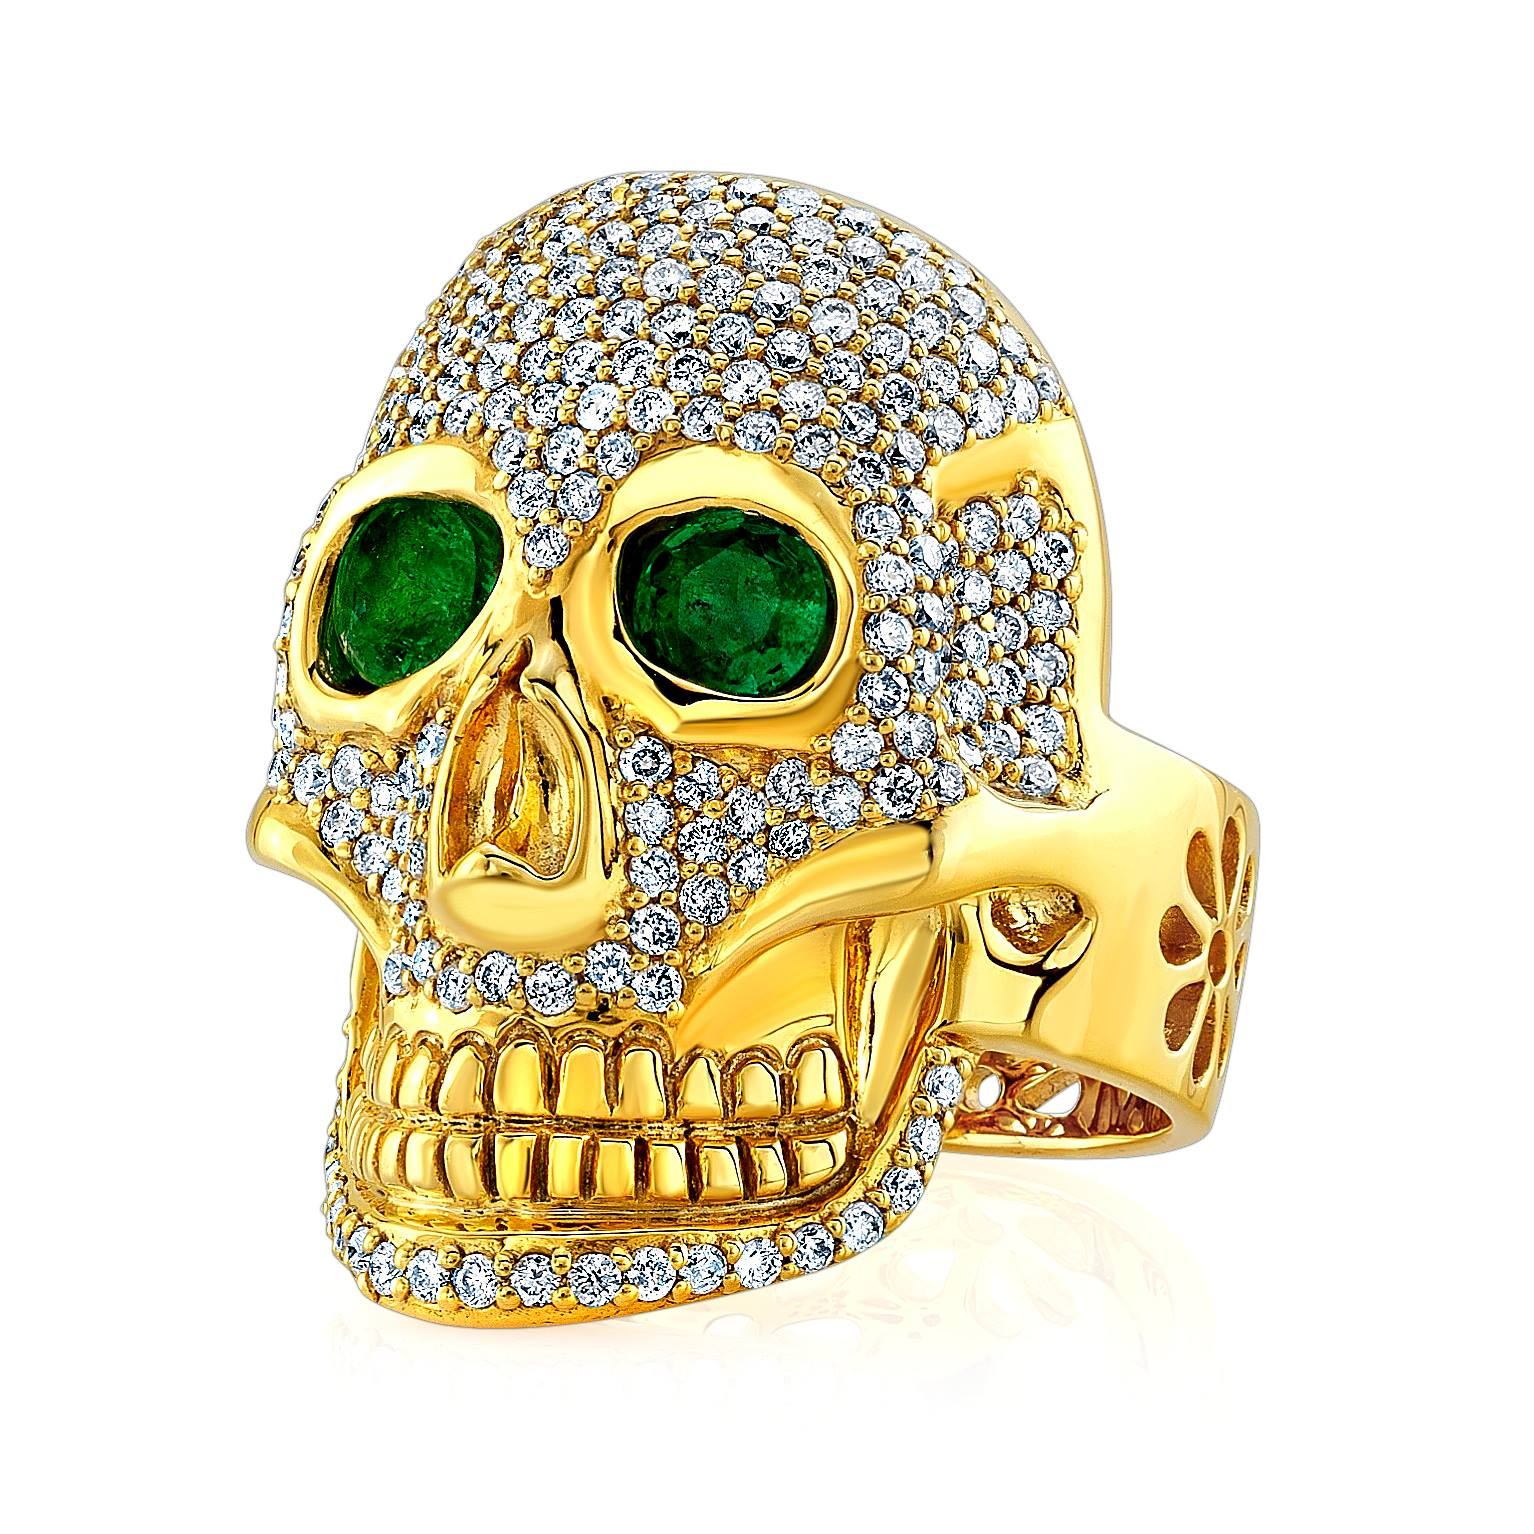 22 karat gold skull ring with diamonds and emeralds